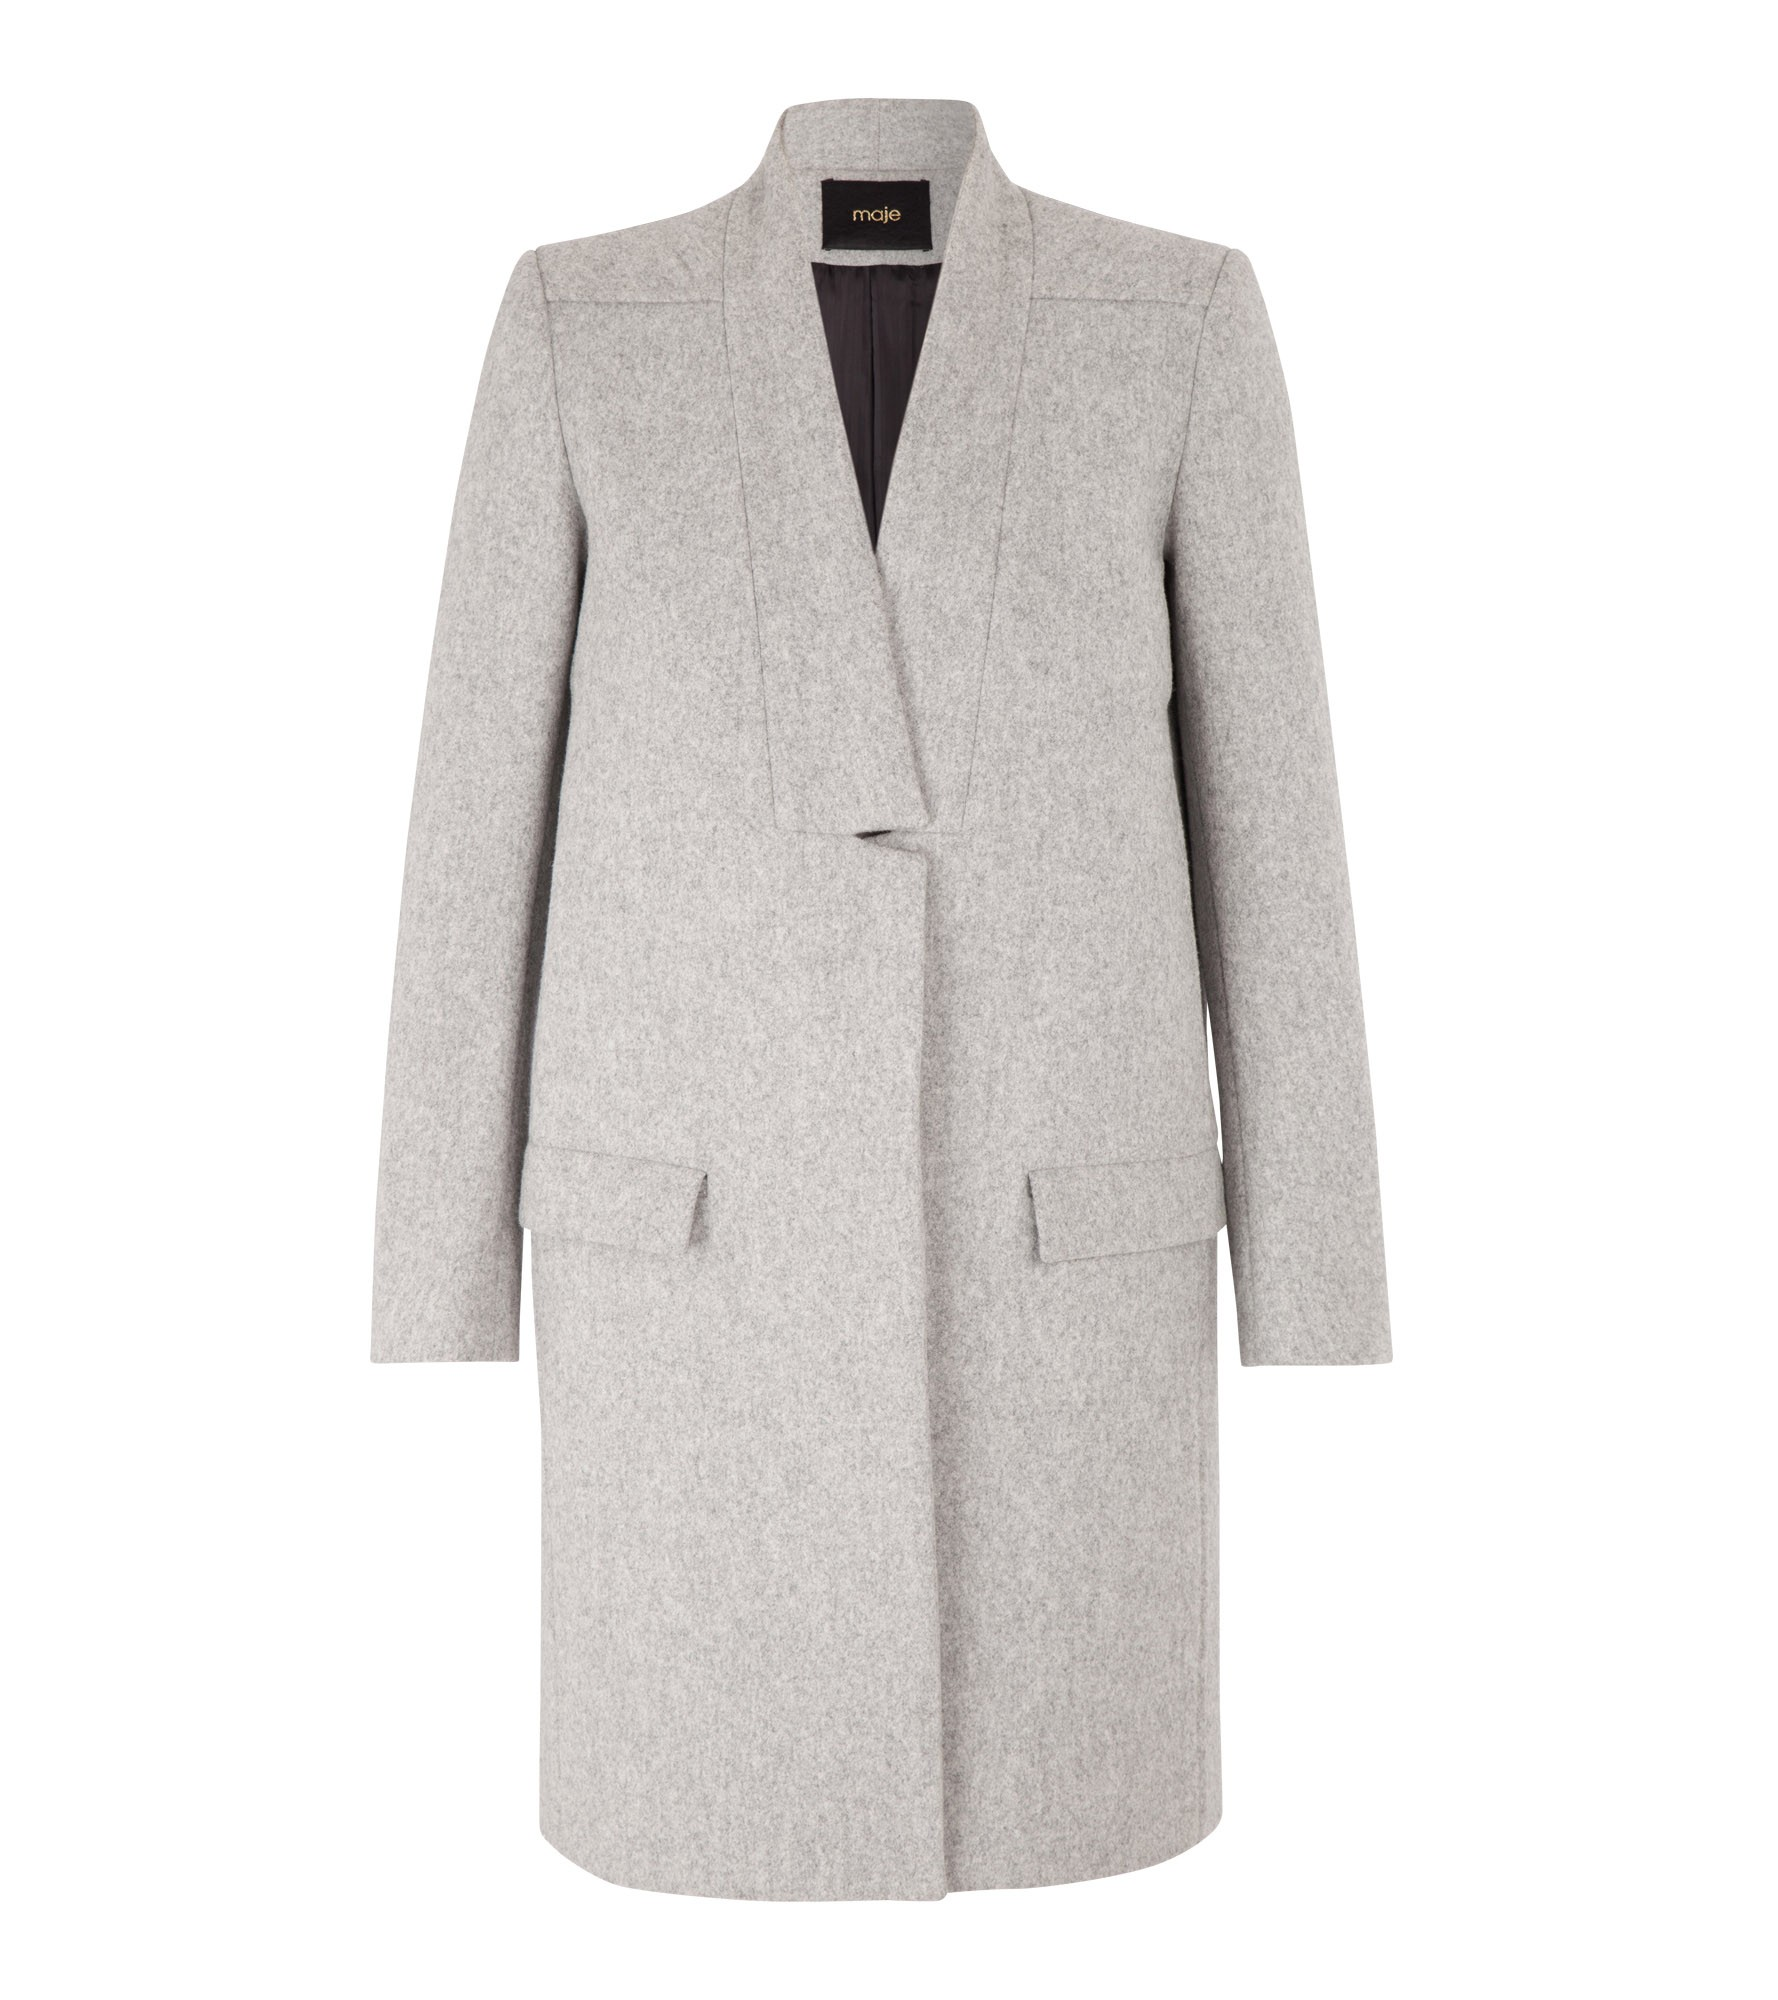 KLINTON Straight Fit Wool Coat at Maje US